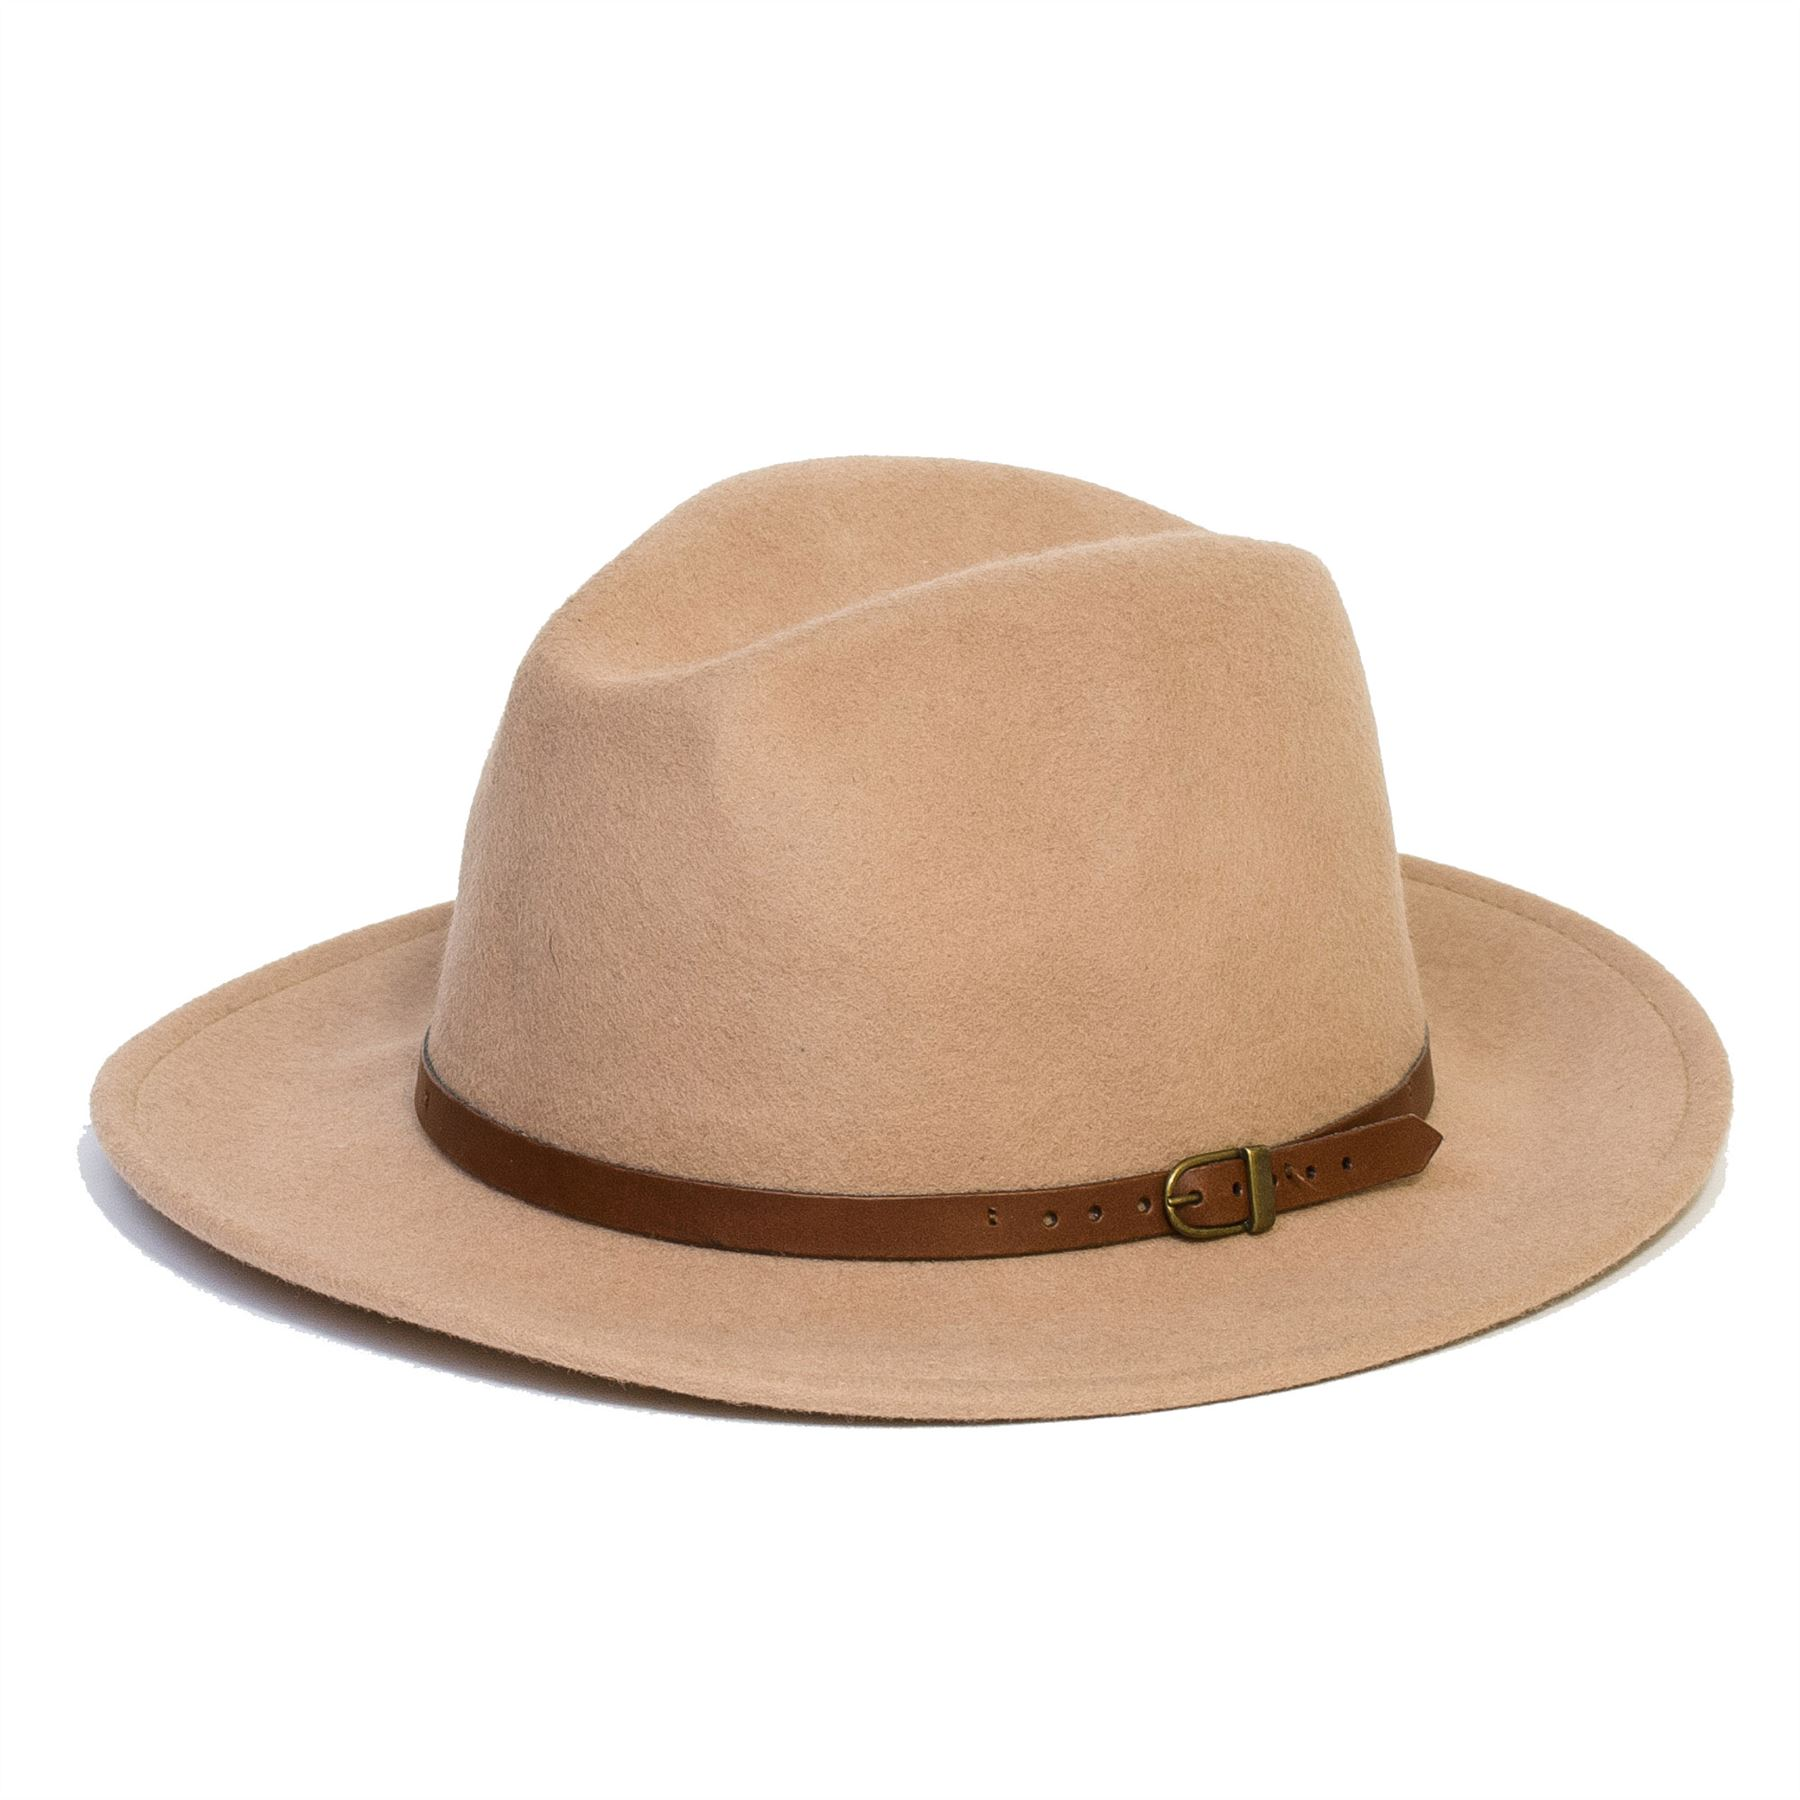 Shop our variety of men's wide brim sun hats and protect your fragile facial skin from the suns harmful UV rays. With a variety of styles to choose from, you can rest assured the wide brim on your men's sun hat will protect you whilst keeping you fashionable and comfortable.